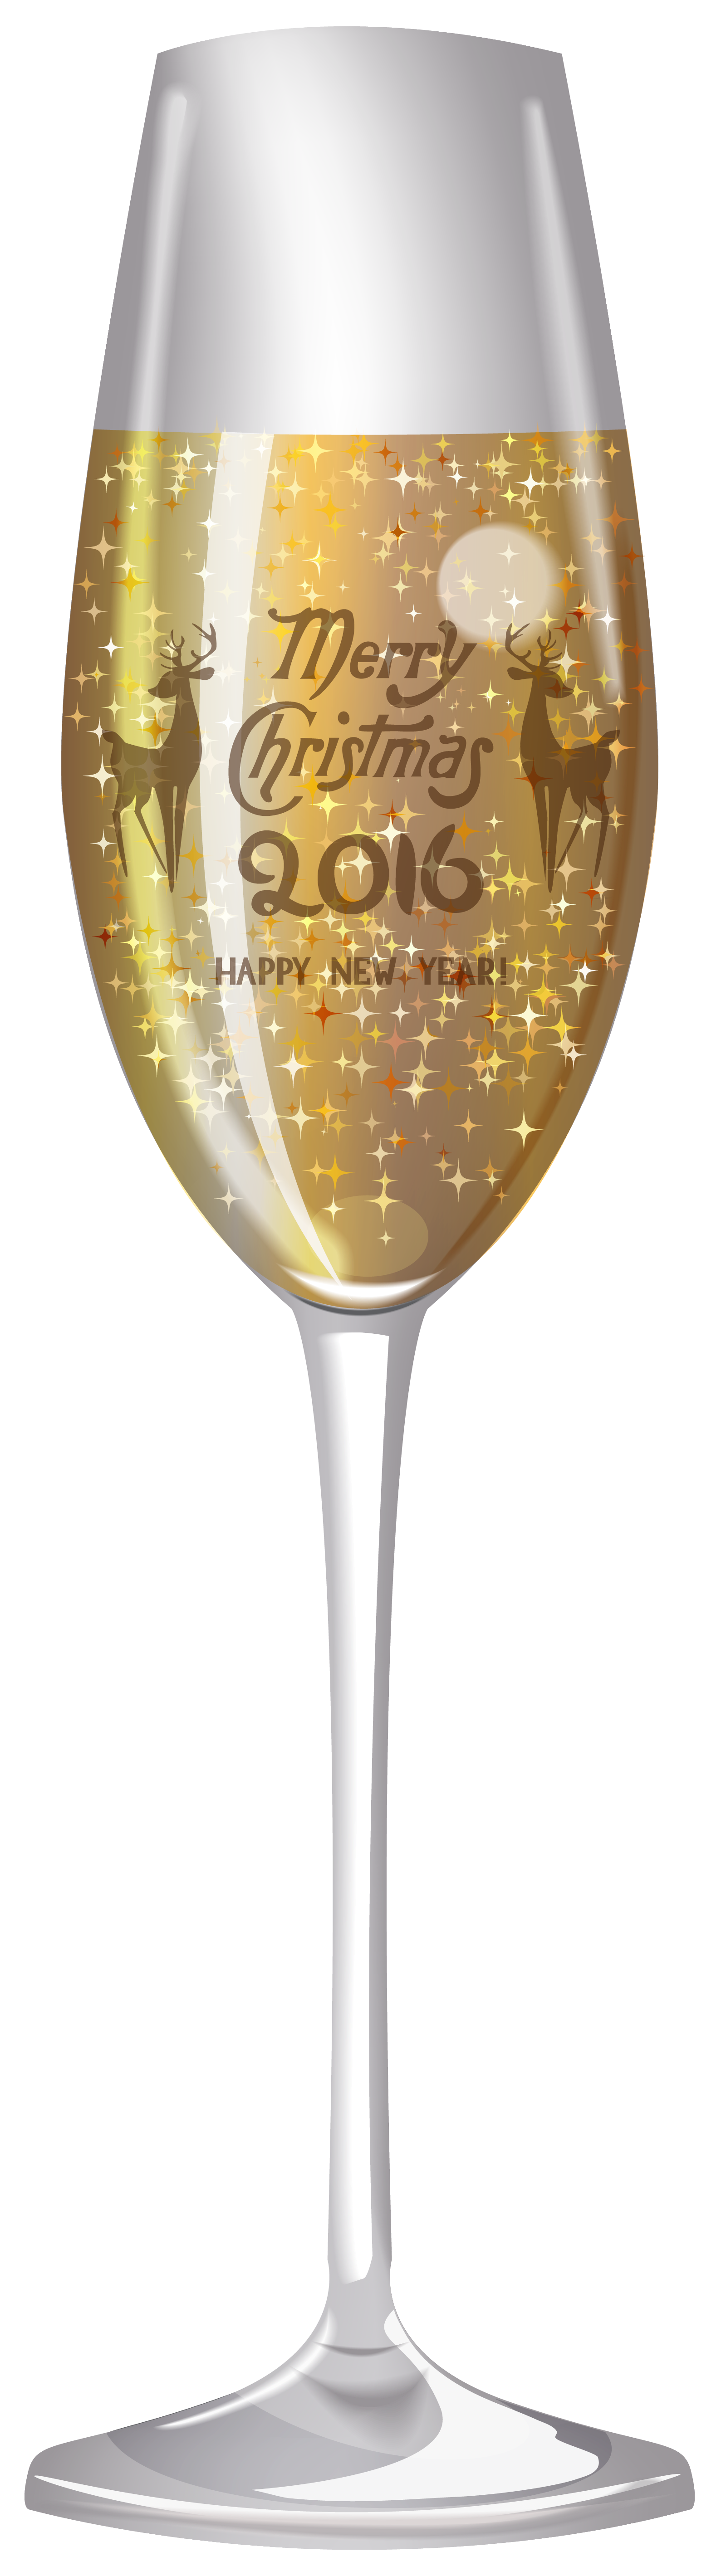 glass png image. Champagne clipart file